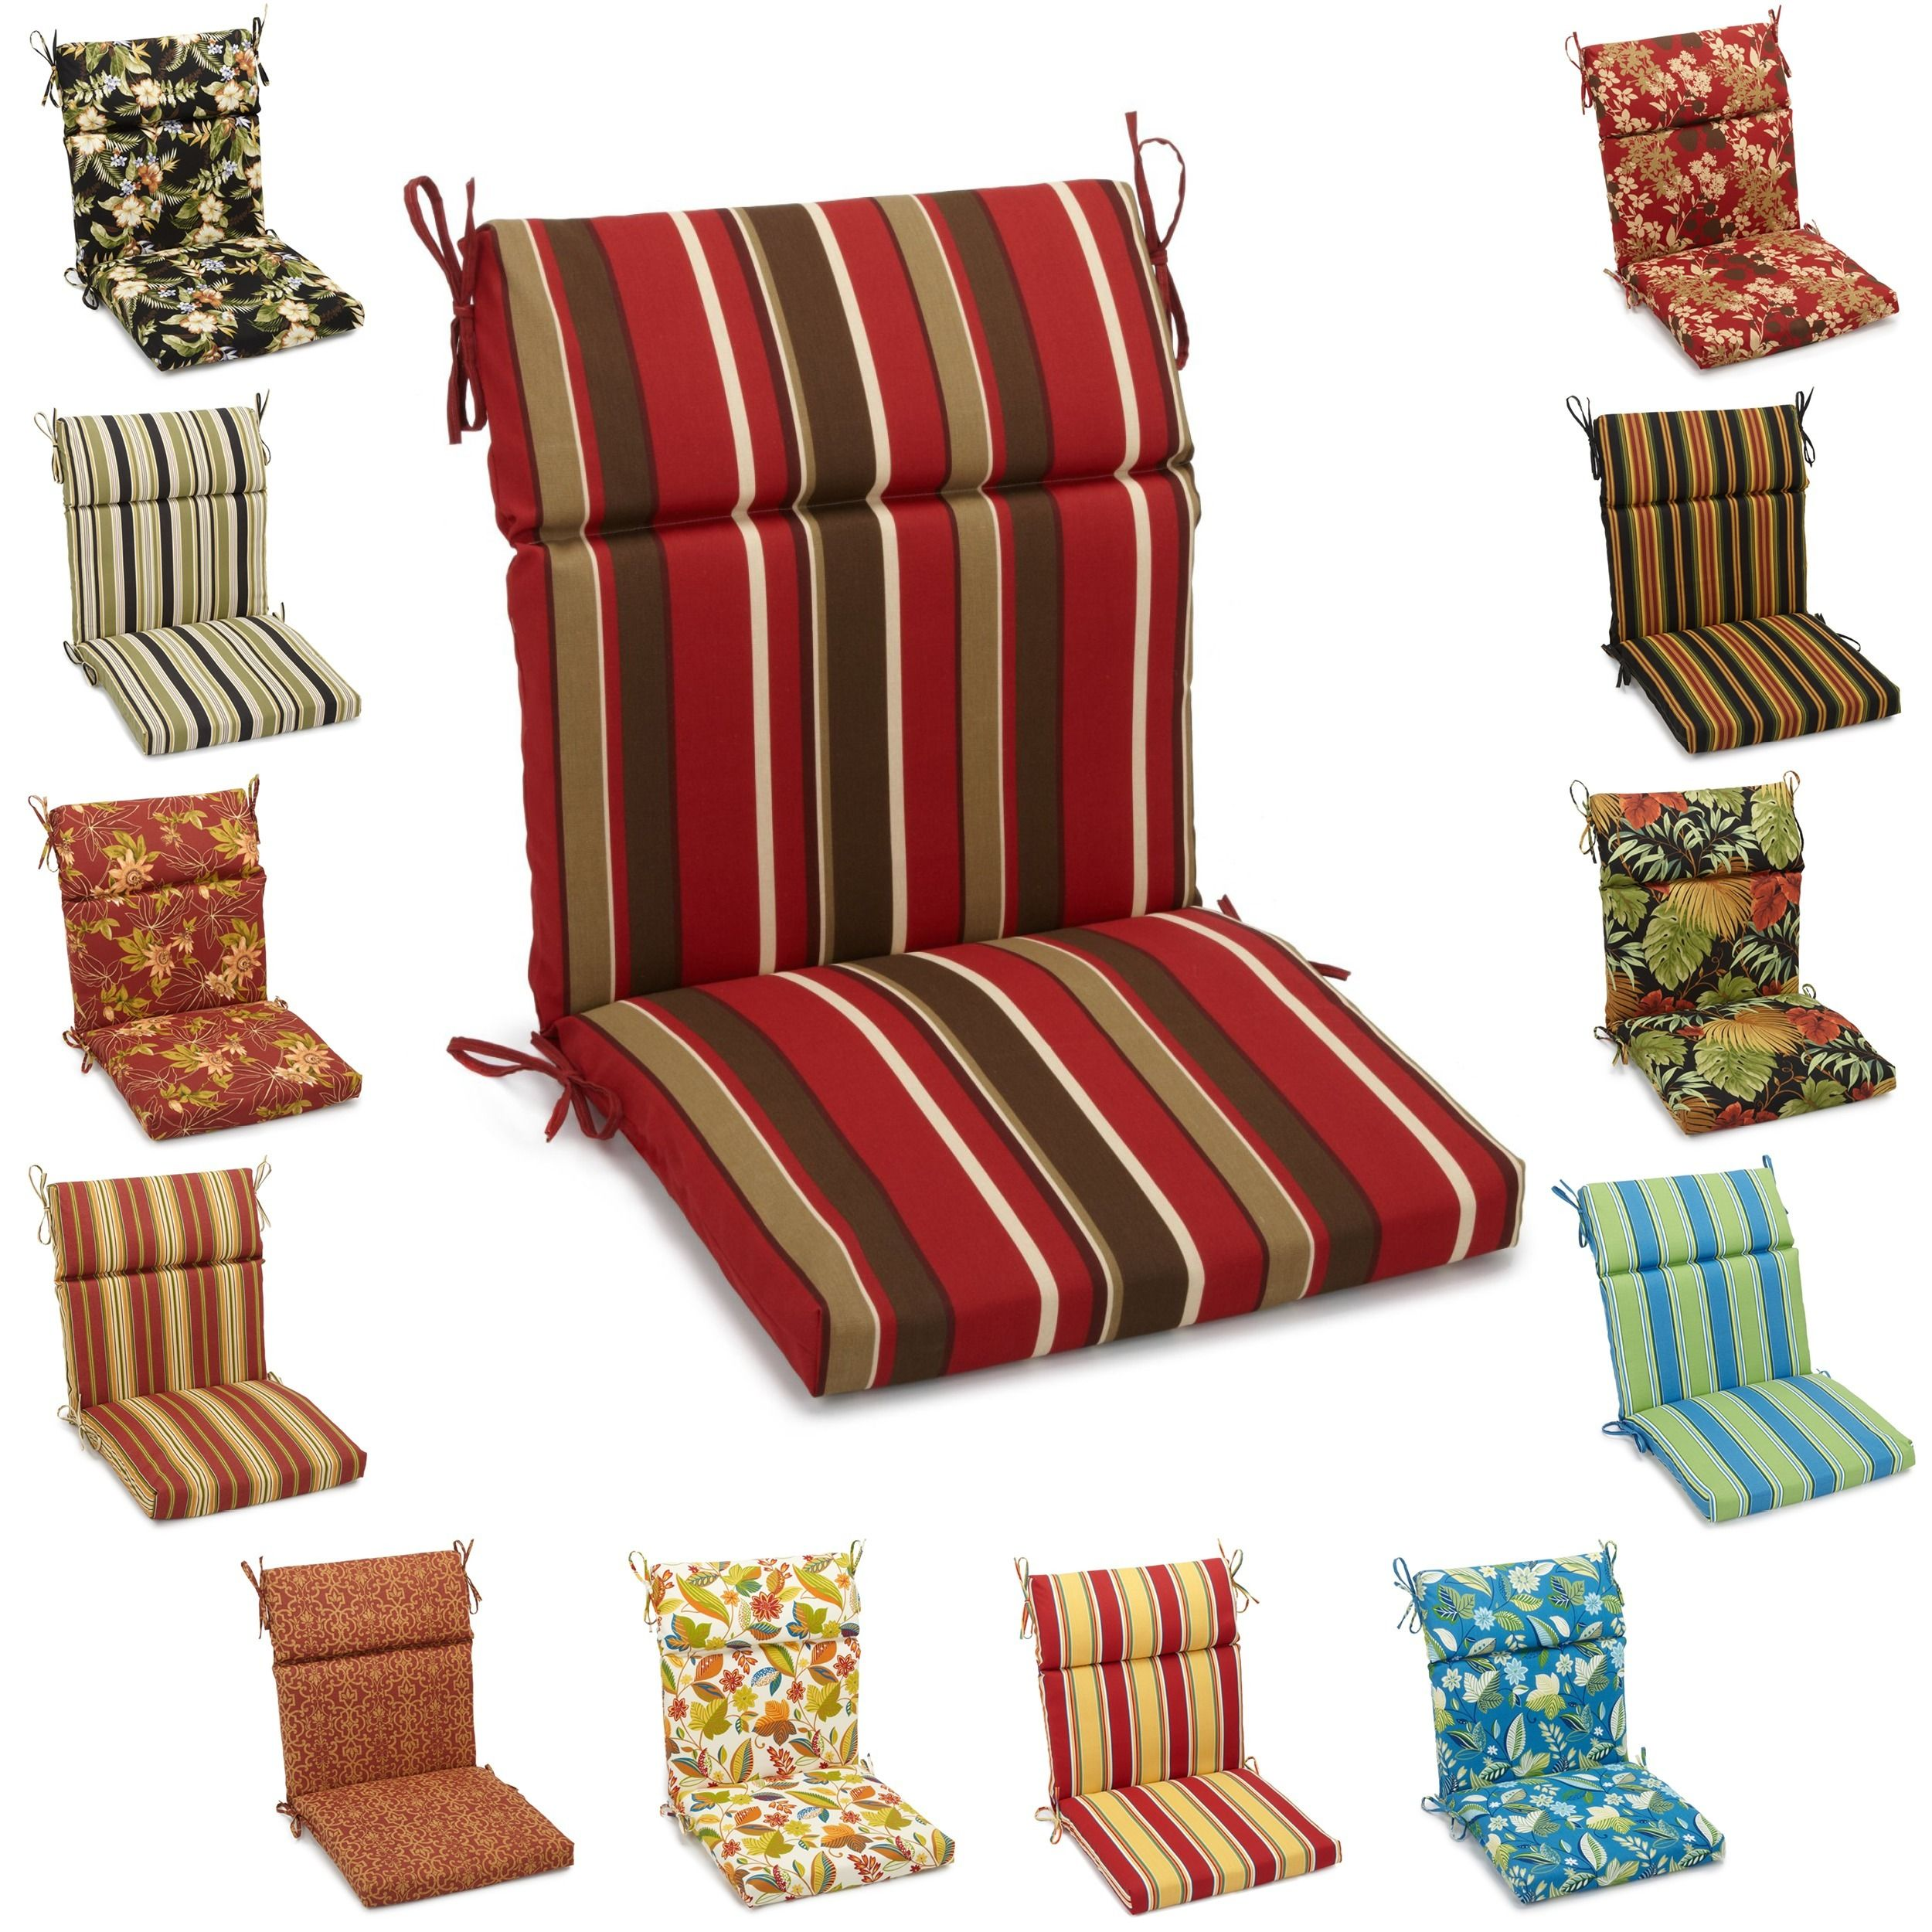 Blazing Needles 42 Inch By 20 Inch Patterned Outdoor Spun Poly Three Section Seat Back Chair Cu Outdoor Chair Cushions Indoor Outdoor Chair Lawn Chair Cushions